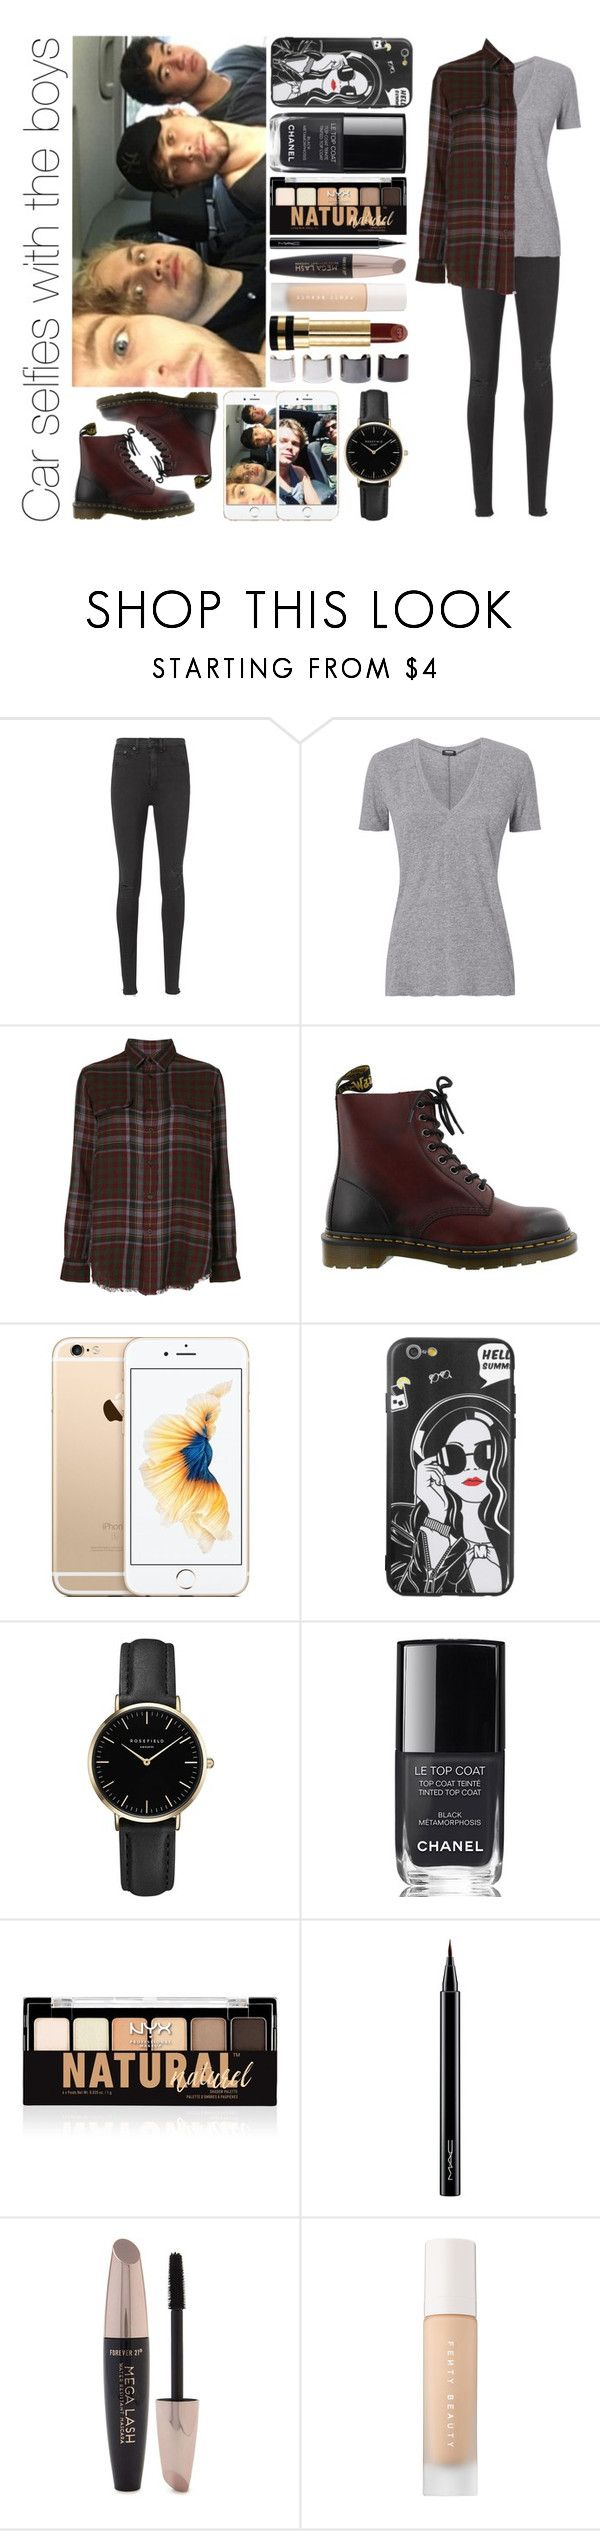 """Car selfies with the boys"" by michaelssmile ❤ liked on Polyvore featuring GET LOST, rag & bone/JEAN, Monrow, Polo Ralph Lauren, Dr. Martens, ROSEFIELD, Chanel, NYX, MAC Cosmetics and Forever 21"